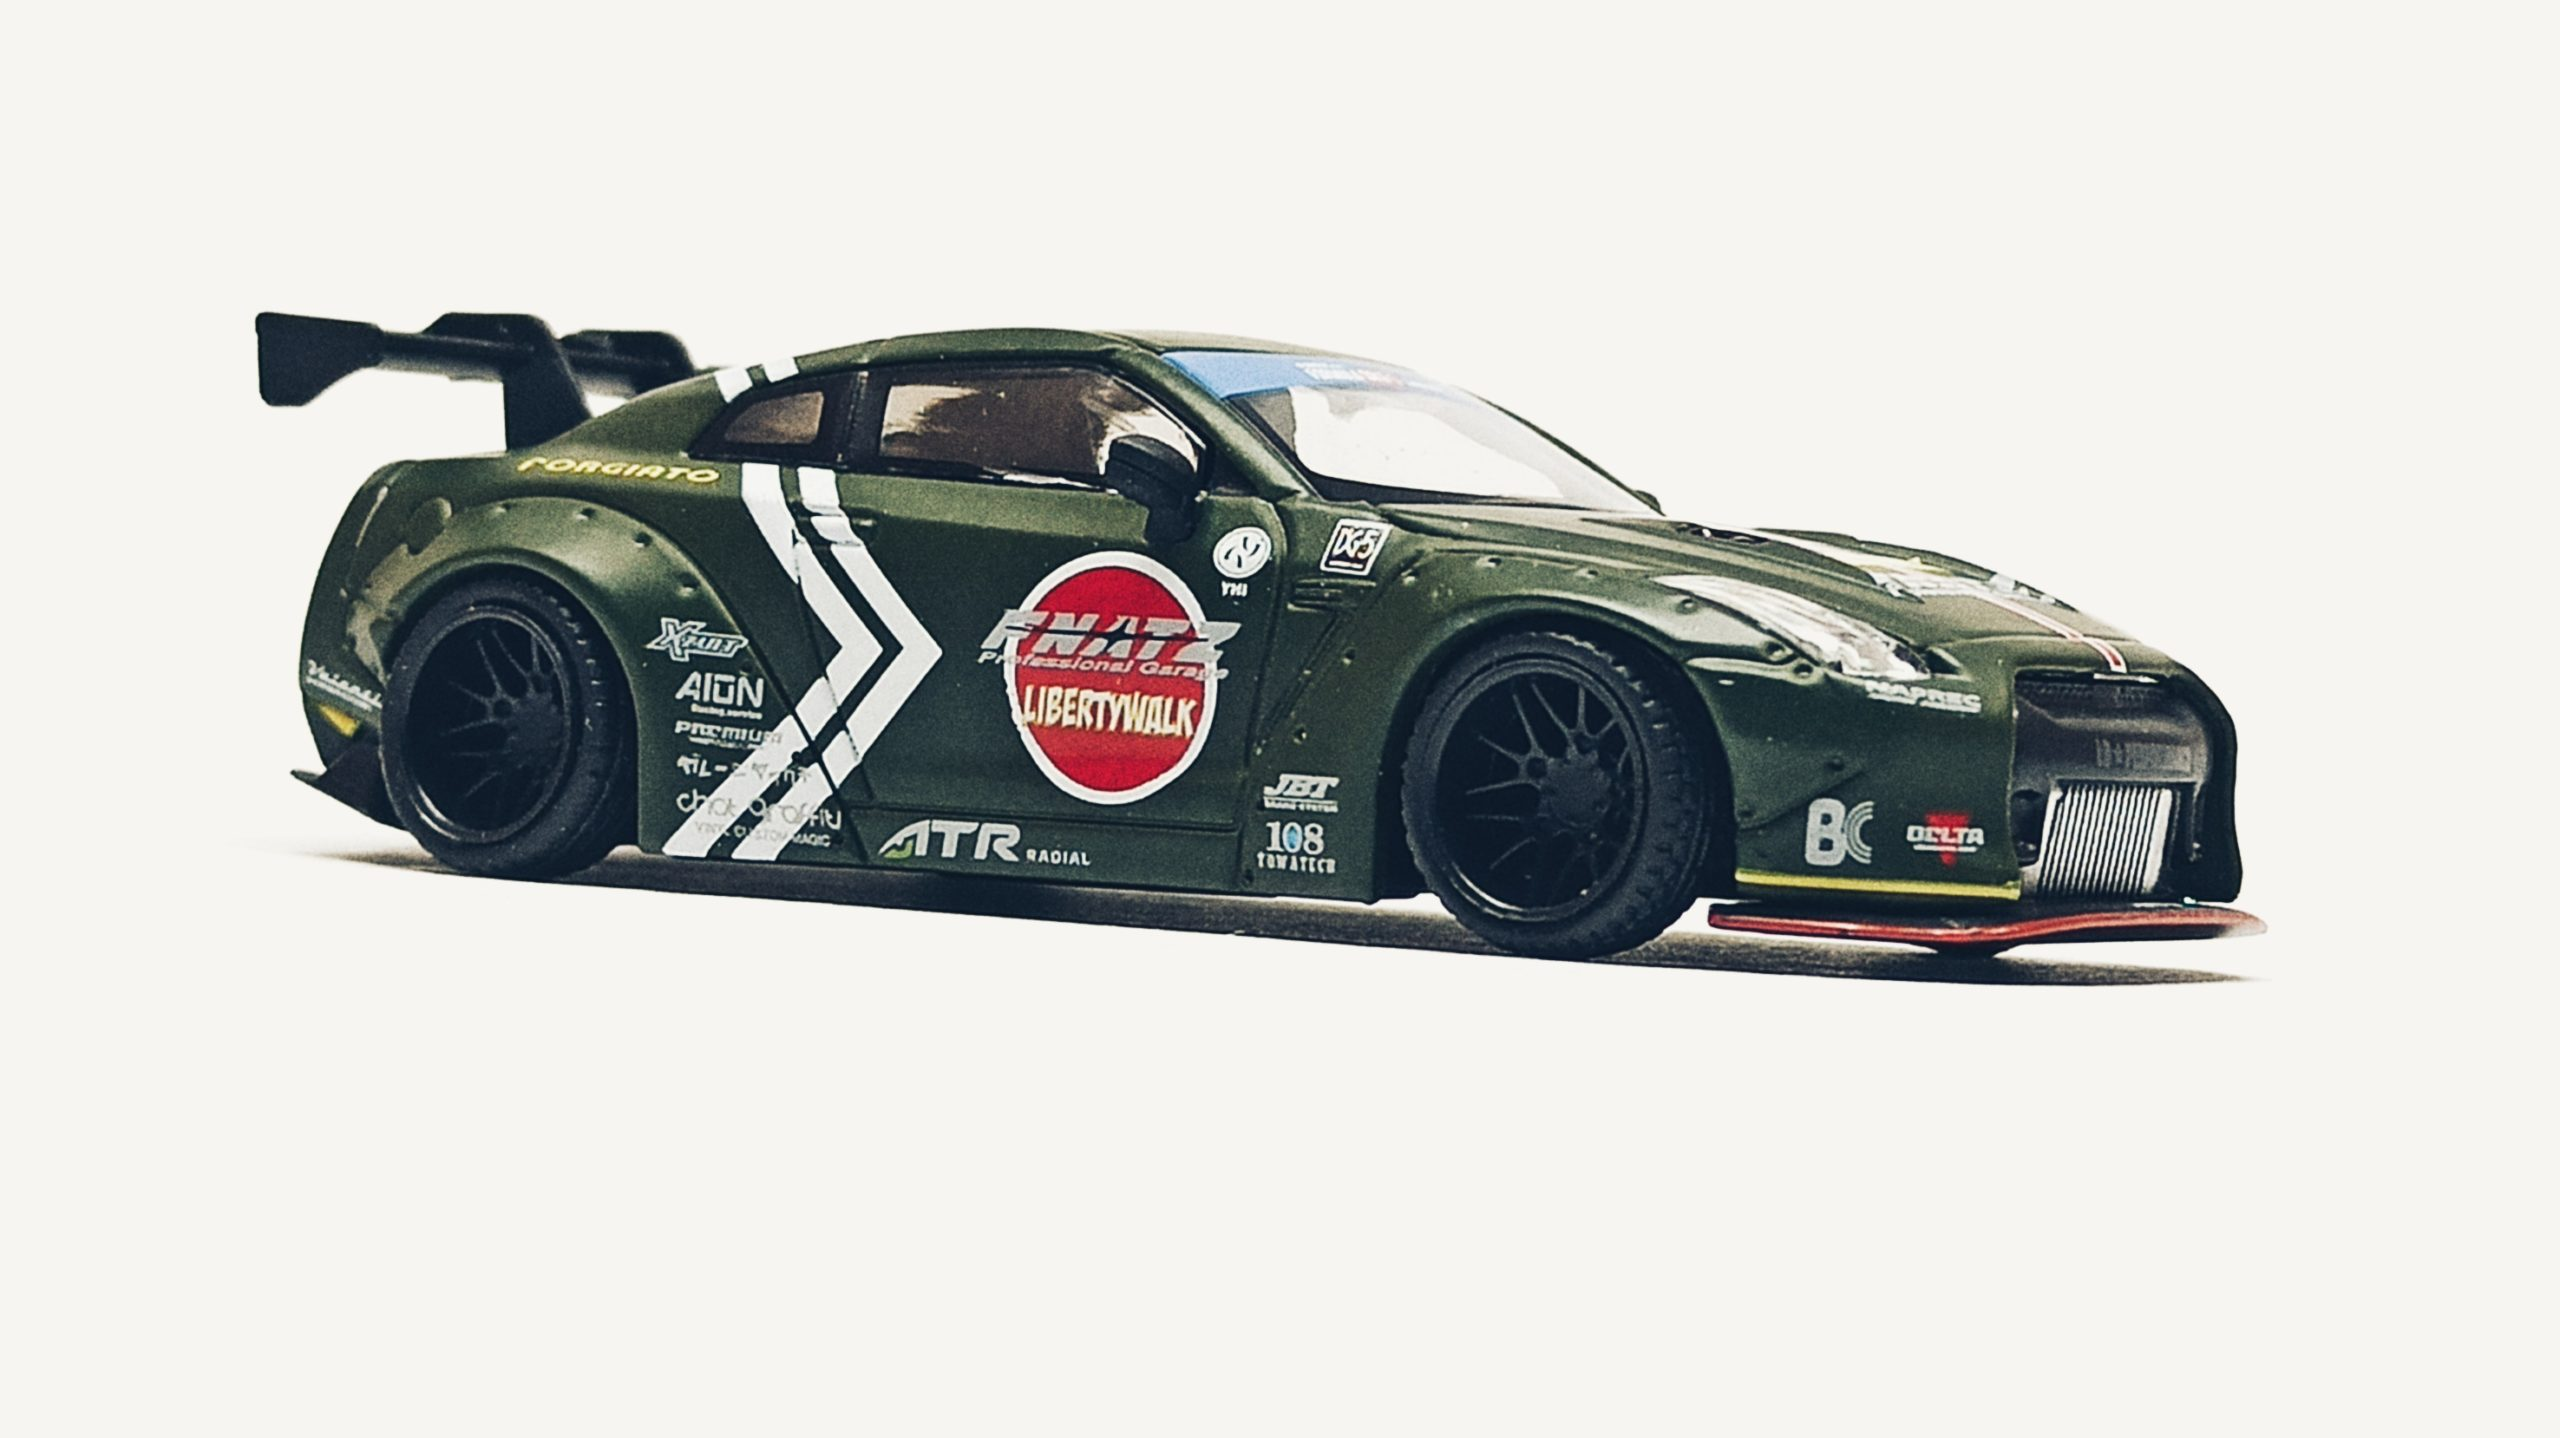 Mini GT Nissan GT-R (R35) (MGT00007-R) 2018 Liberty Walk LB★Works Type 1 Rear Wing ver 1 Zero Fighter Special (RHD) side angle